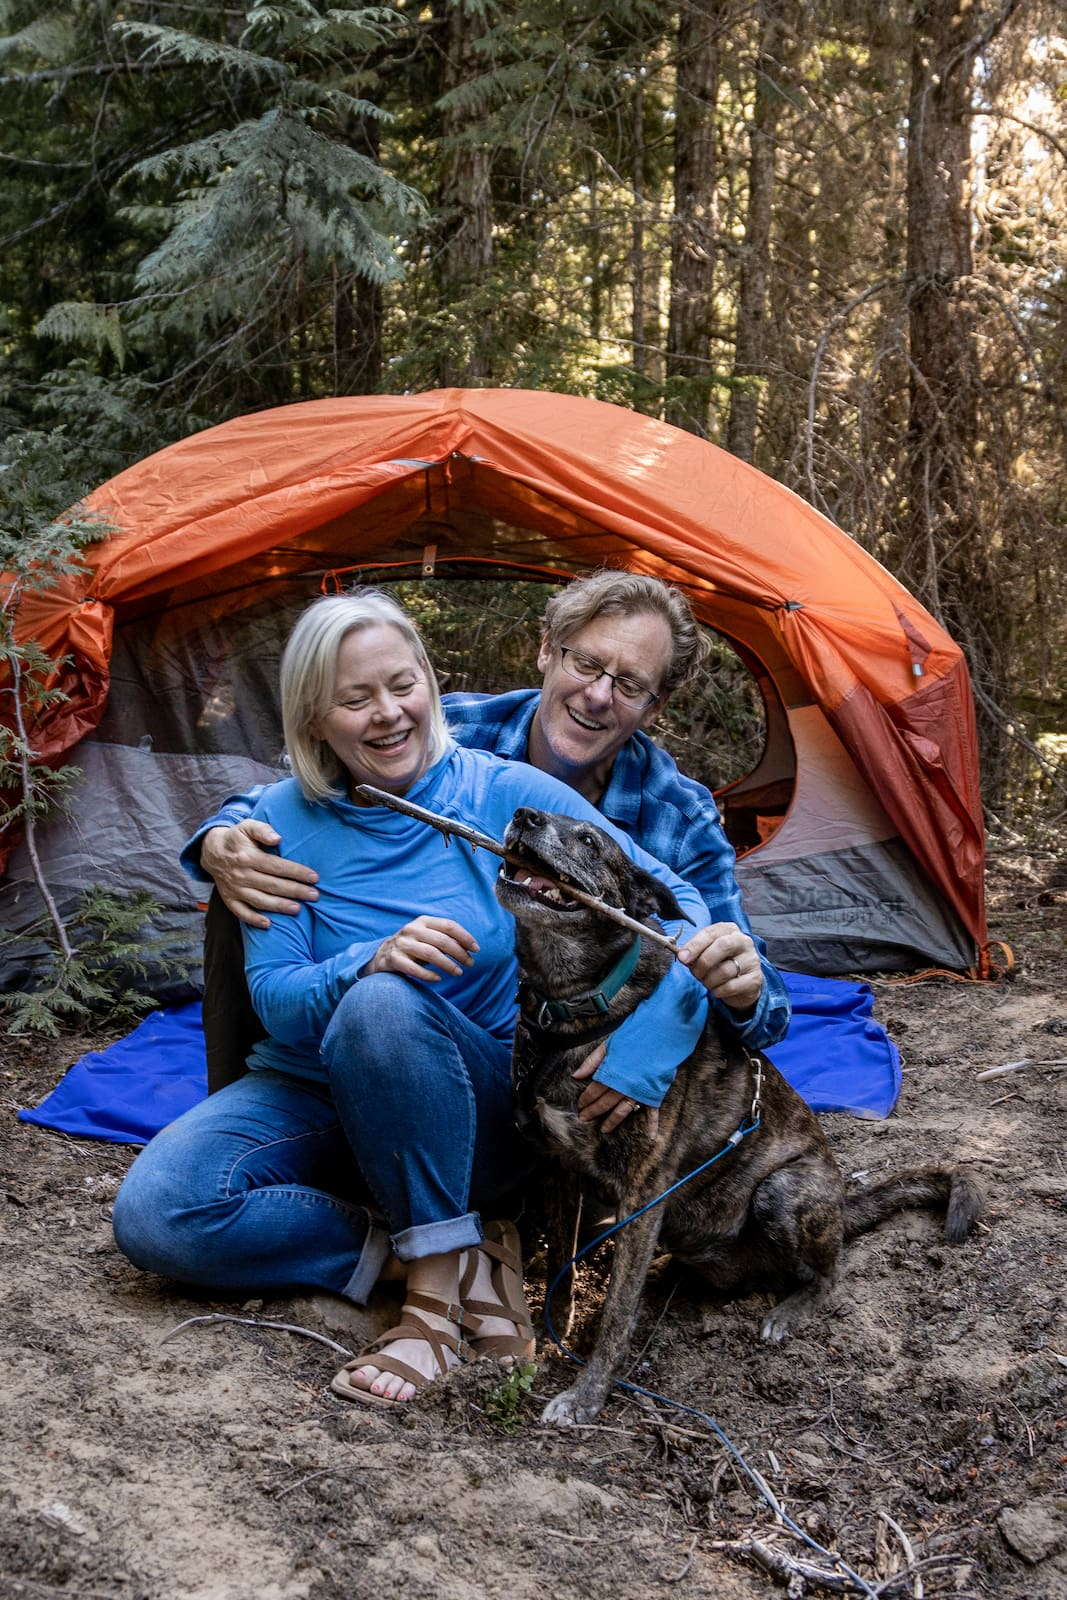 The Dyrt founders Kevin Long and Sarah Smith camping with their dog Brandy.